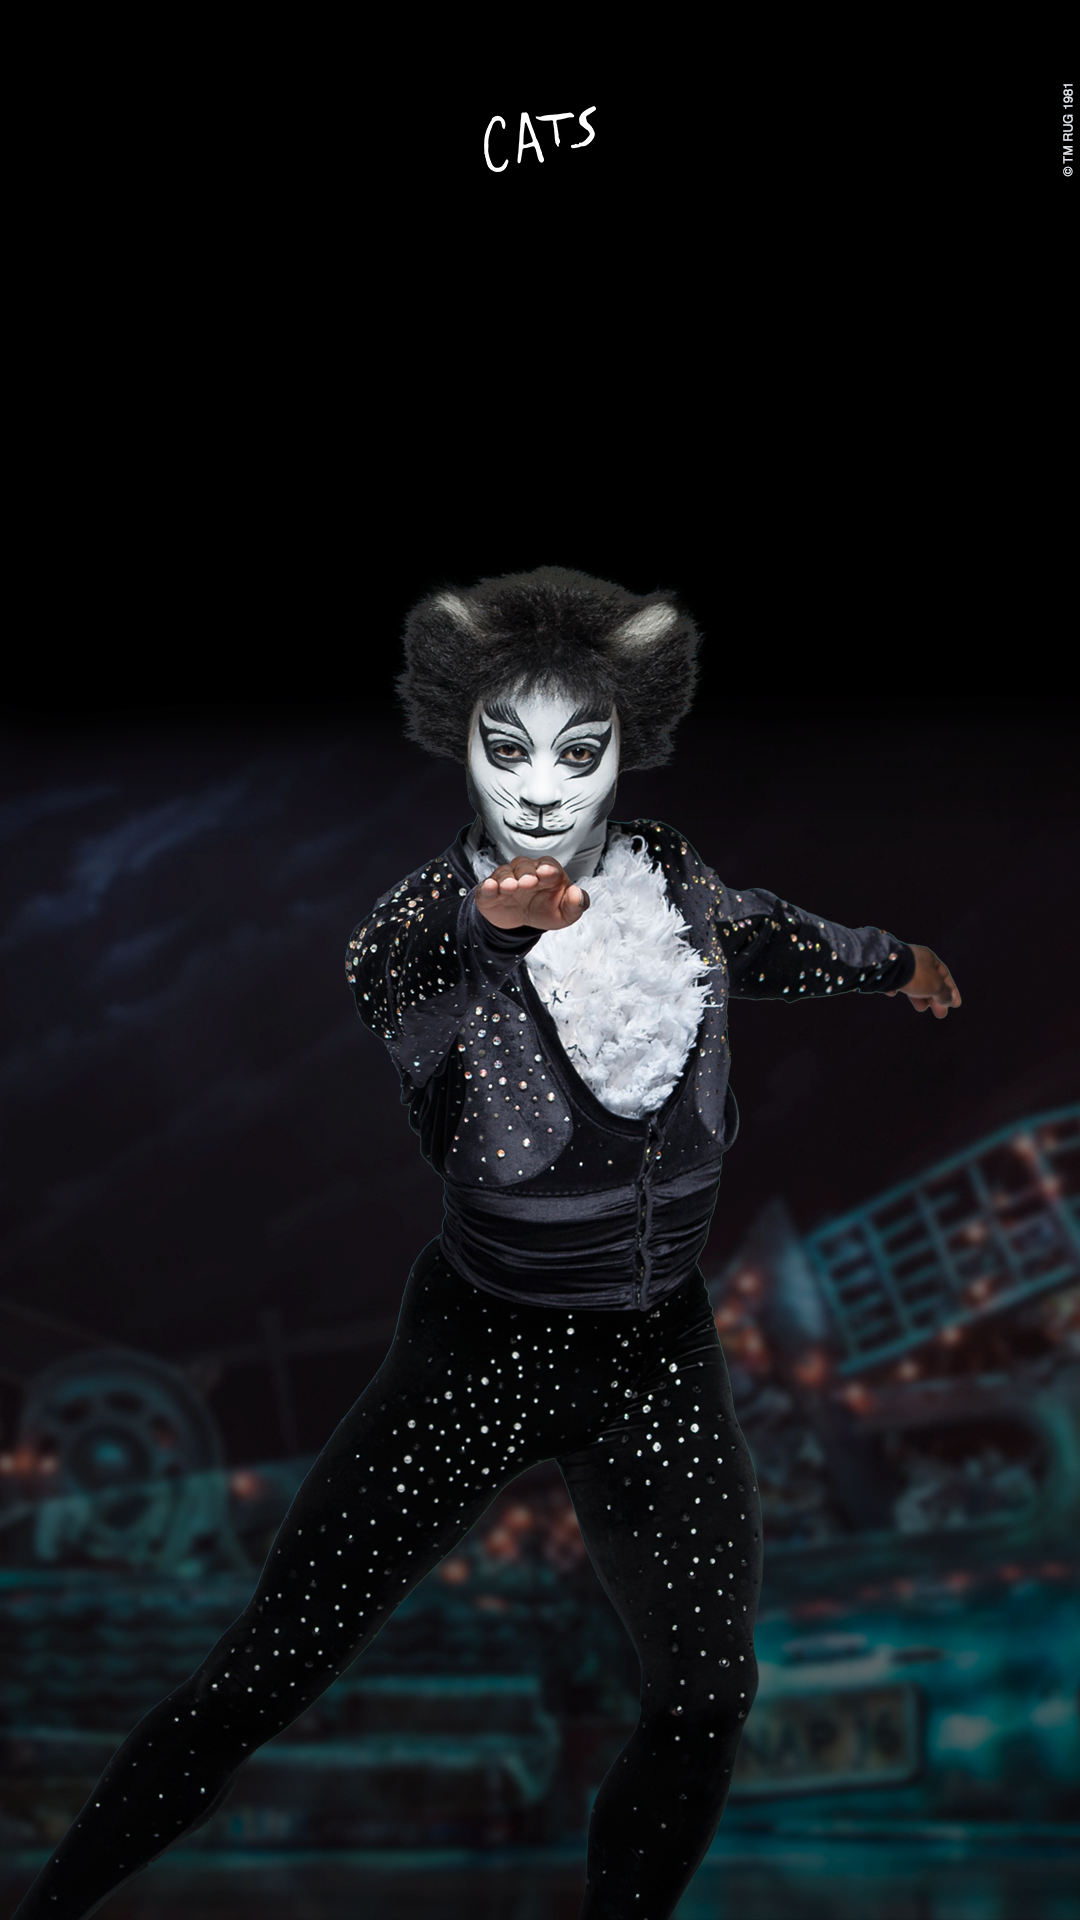 Iphone Wallpapers Cats The Musical Iphone Wallpaper Cat Musicals Cats The Musical Costume